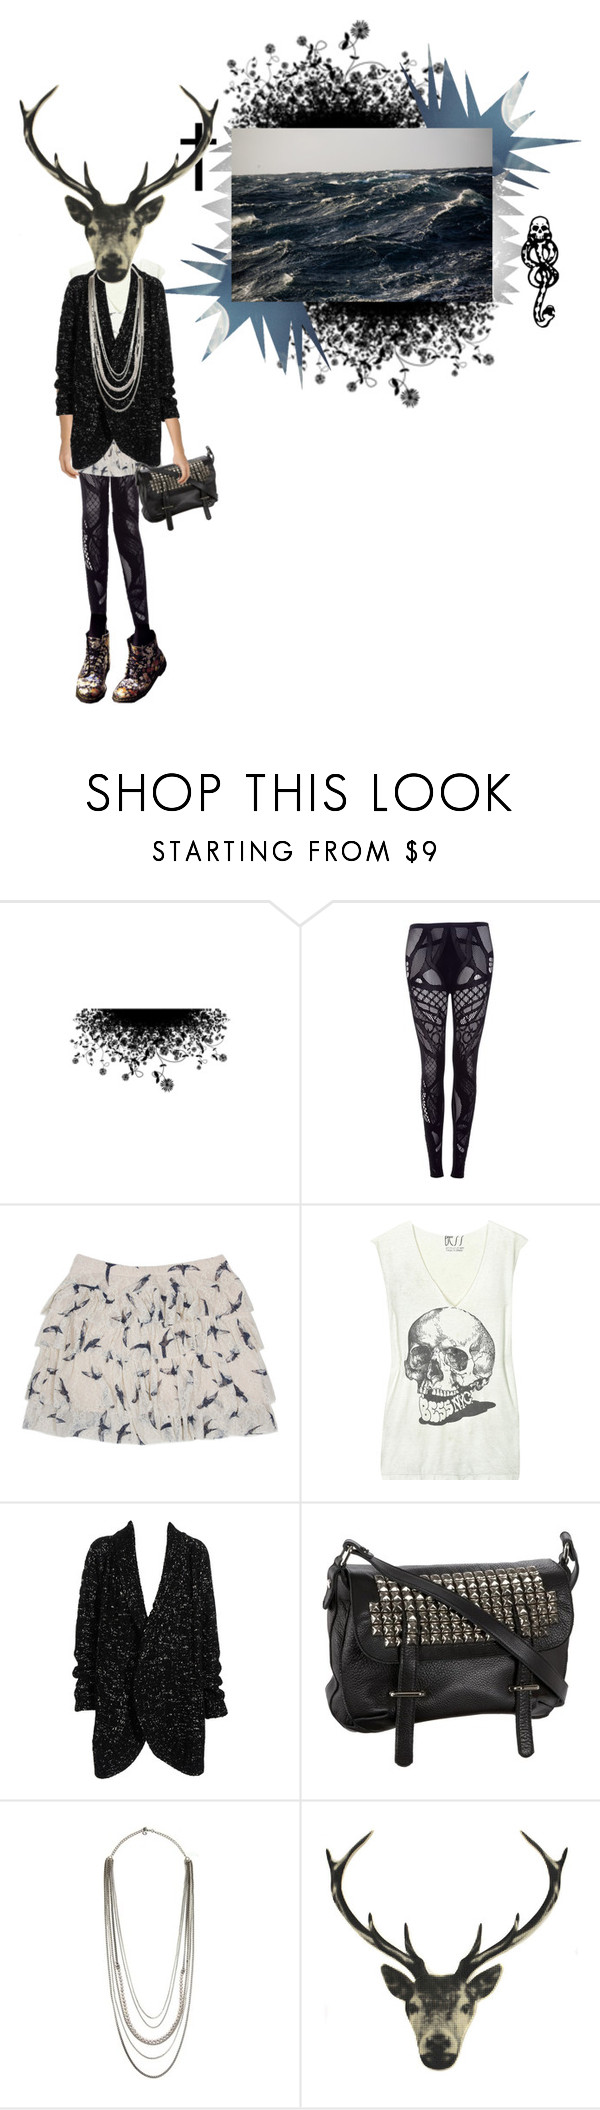 """I want legs as skinny as bambi's"" by rosa-loves-skittles ❤ liked on Polyvore featuring Alexander McQueen, mark., Bess, Clare Tough, Tylie Malibu and PENNY LEVI"